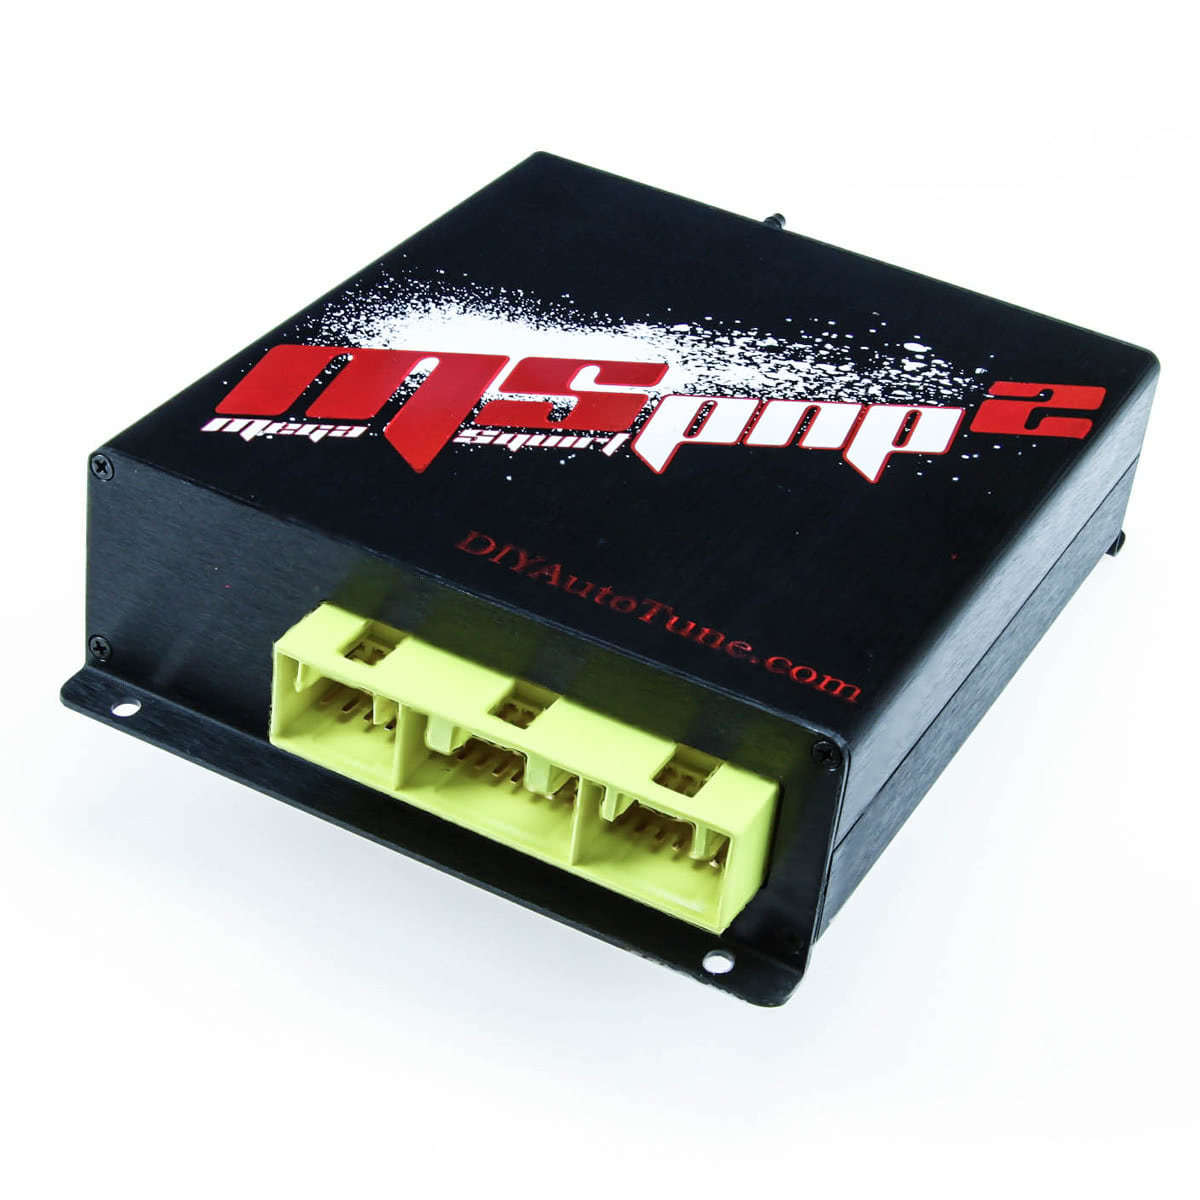 how to megasquirt your 4age powered mki toyota mr2 or ae86 corolla our mspnp fully assembled plug and play ready to run unit that makes installing megasquirt a snap click here for mspnp installation instructions and you